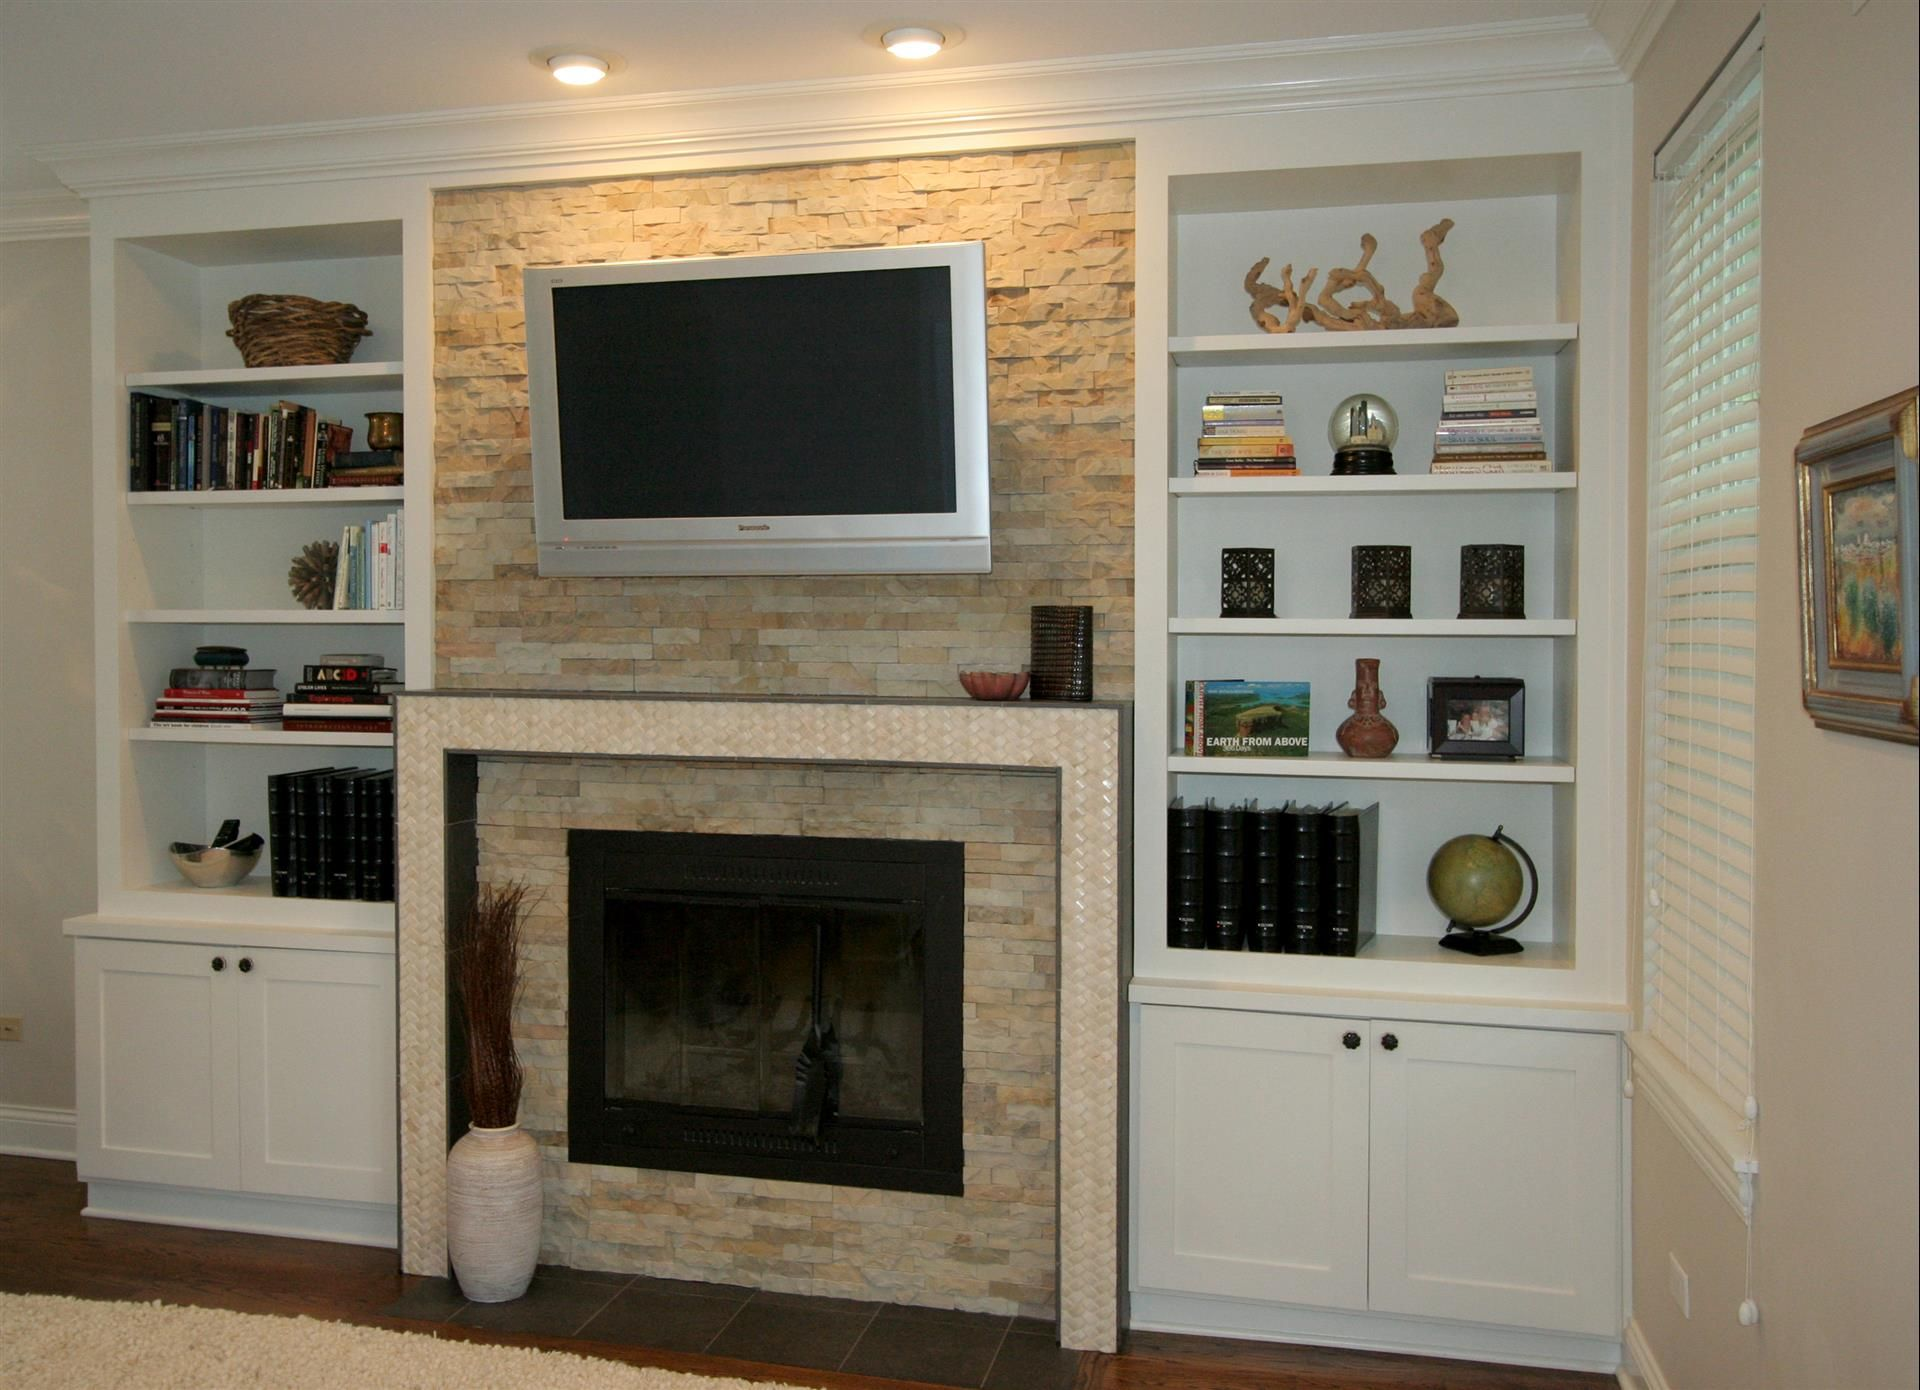 Fireplaces, Built-Ins, and Custom Cabinets | Bell Remodel ...